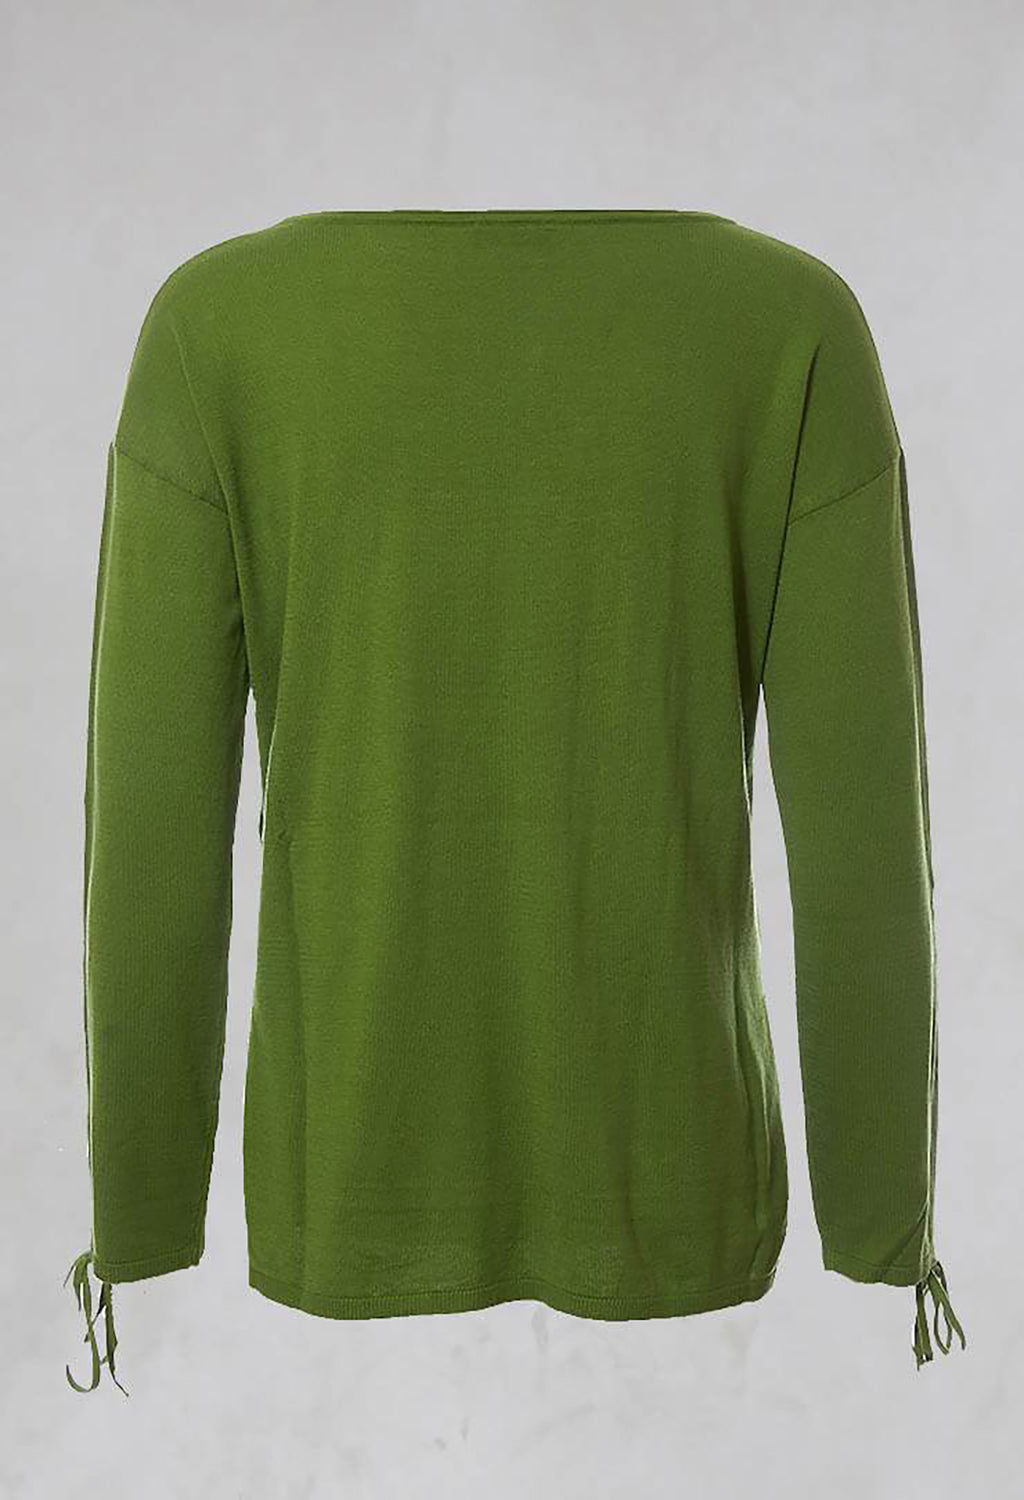 Fine Knit Top with Tie Sleeves in Verde Muschio